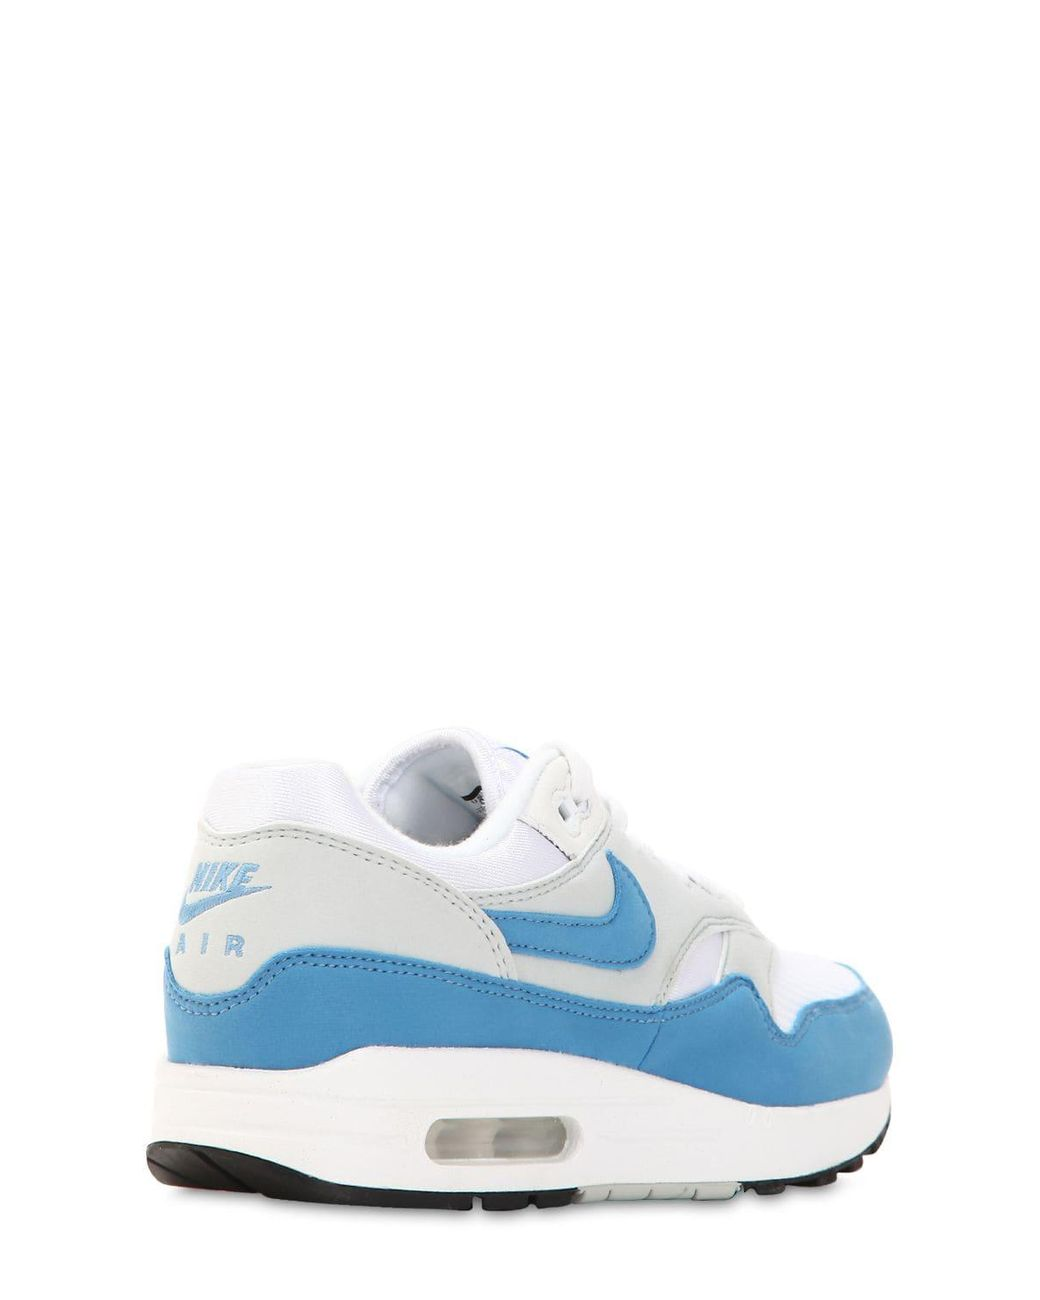 batalla Química Independiente  Nike Leather Air Max 1 Gel Sneakers in White/Blue (Blue) - Save 30% - Lyst